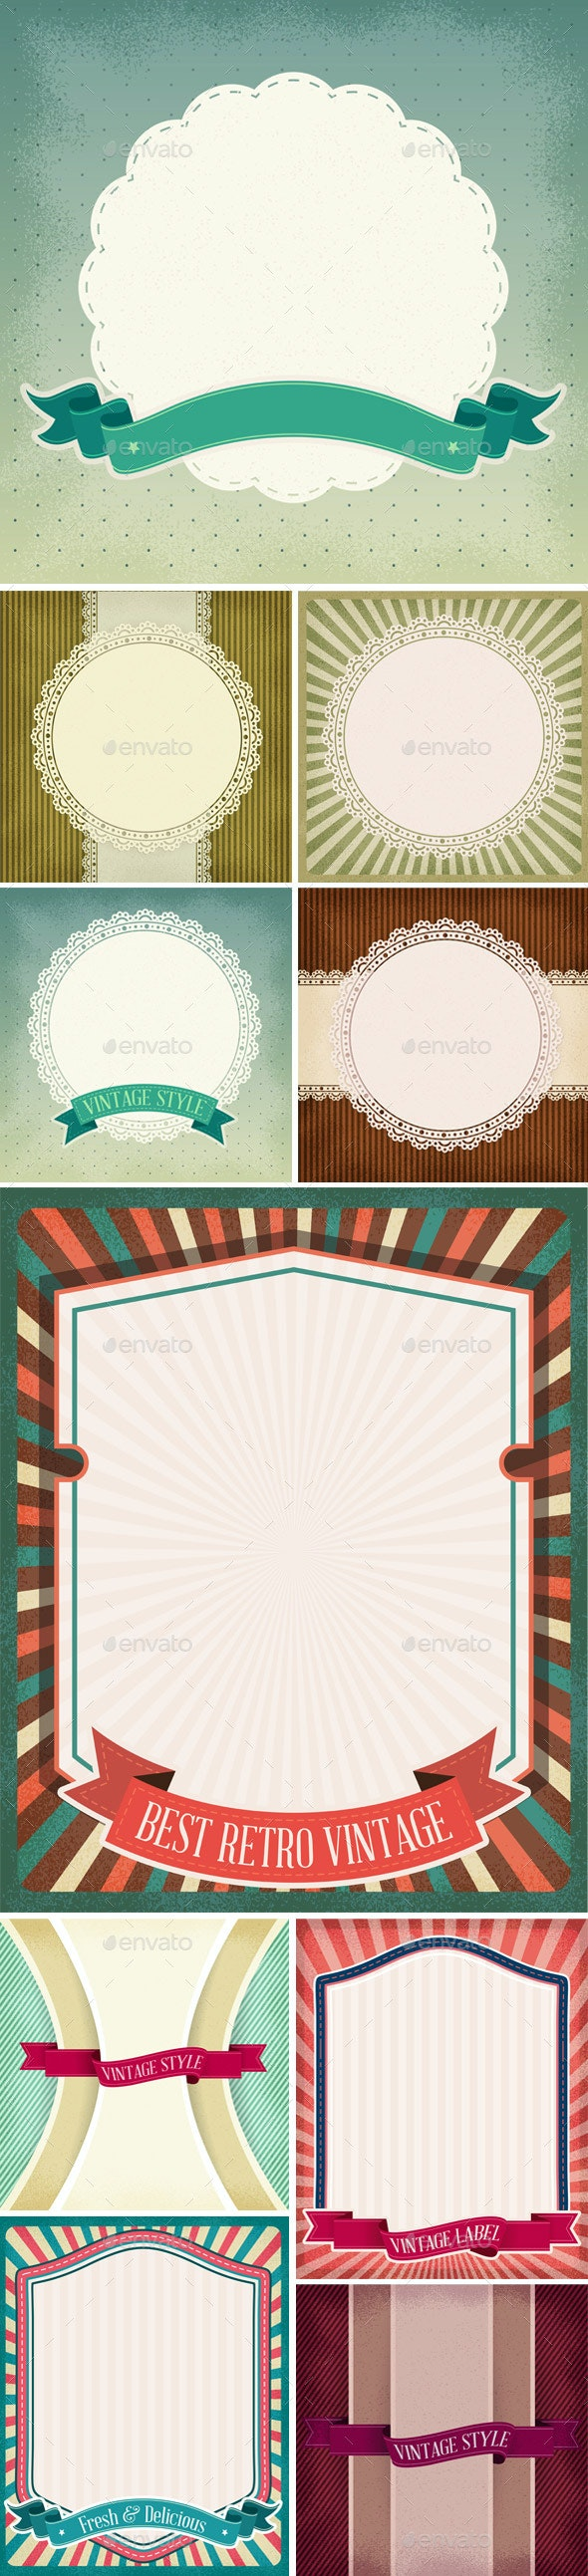 10 Retro Vintage Backgrounds - Backgrounds Decorative